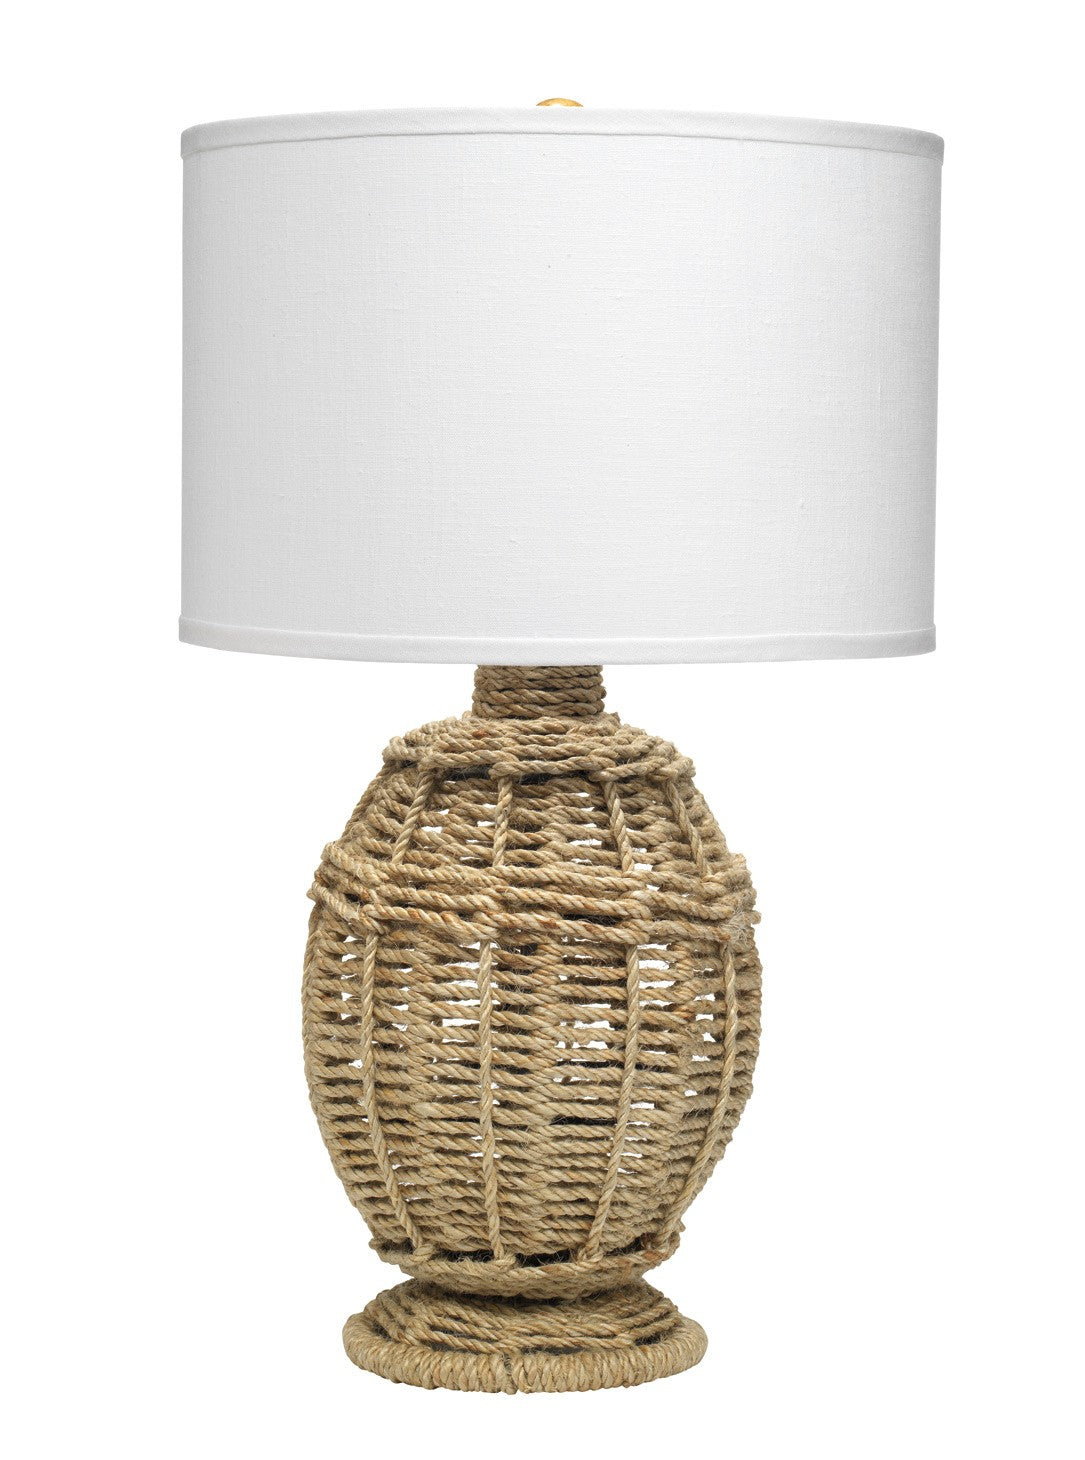 Jamie Young Small Jute Urn Table Lamp